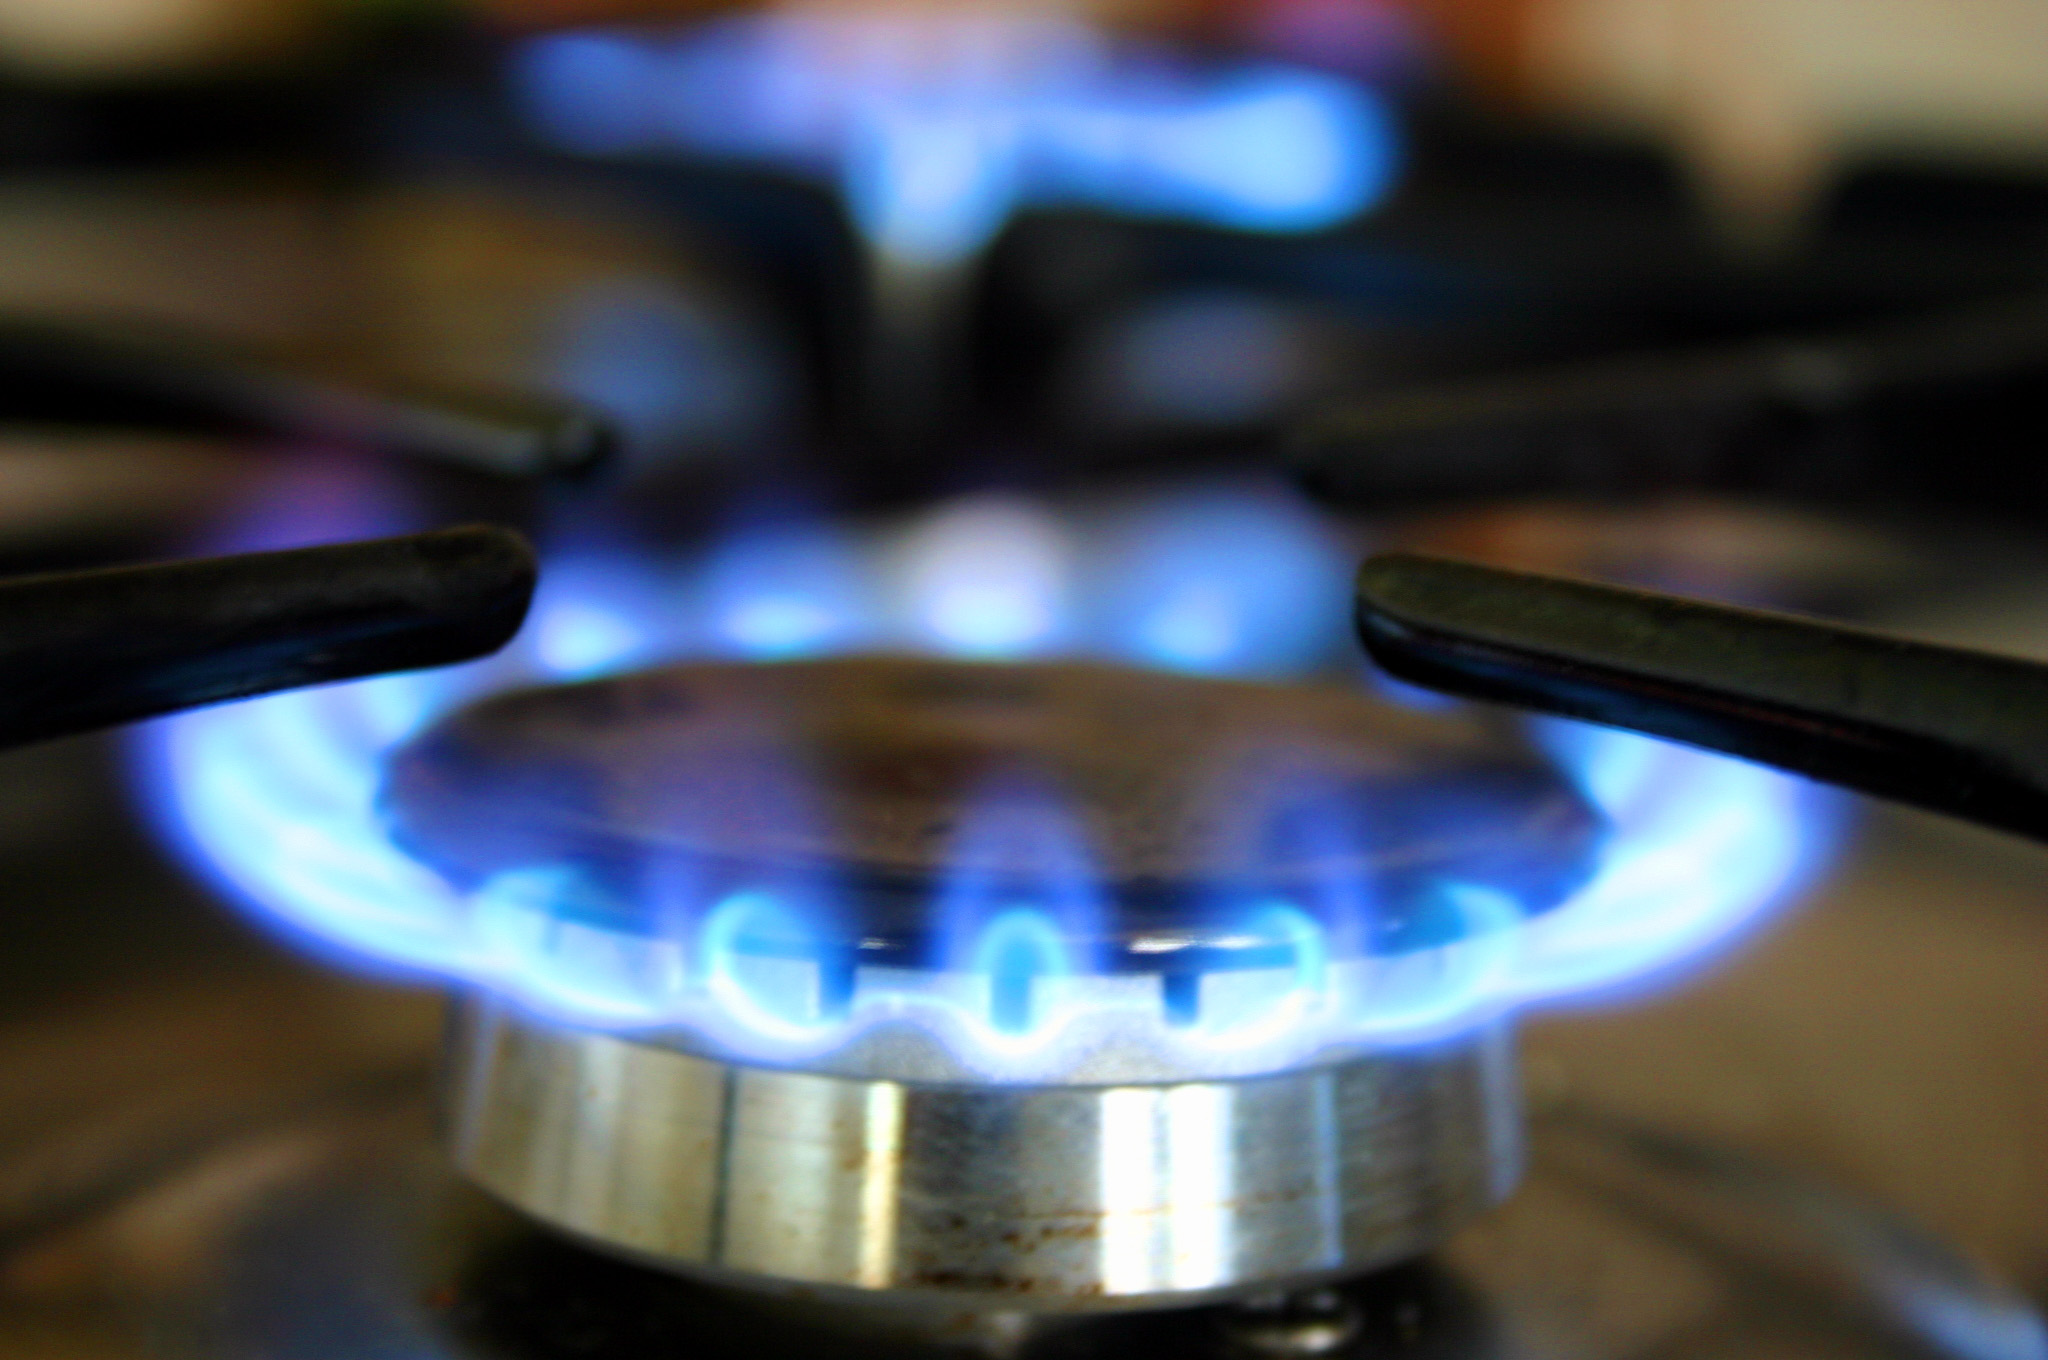 Energy plans ending can result in substantial bill increases